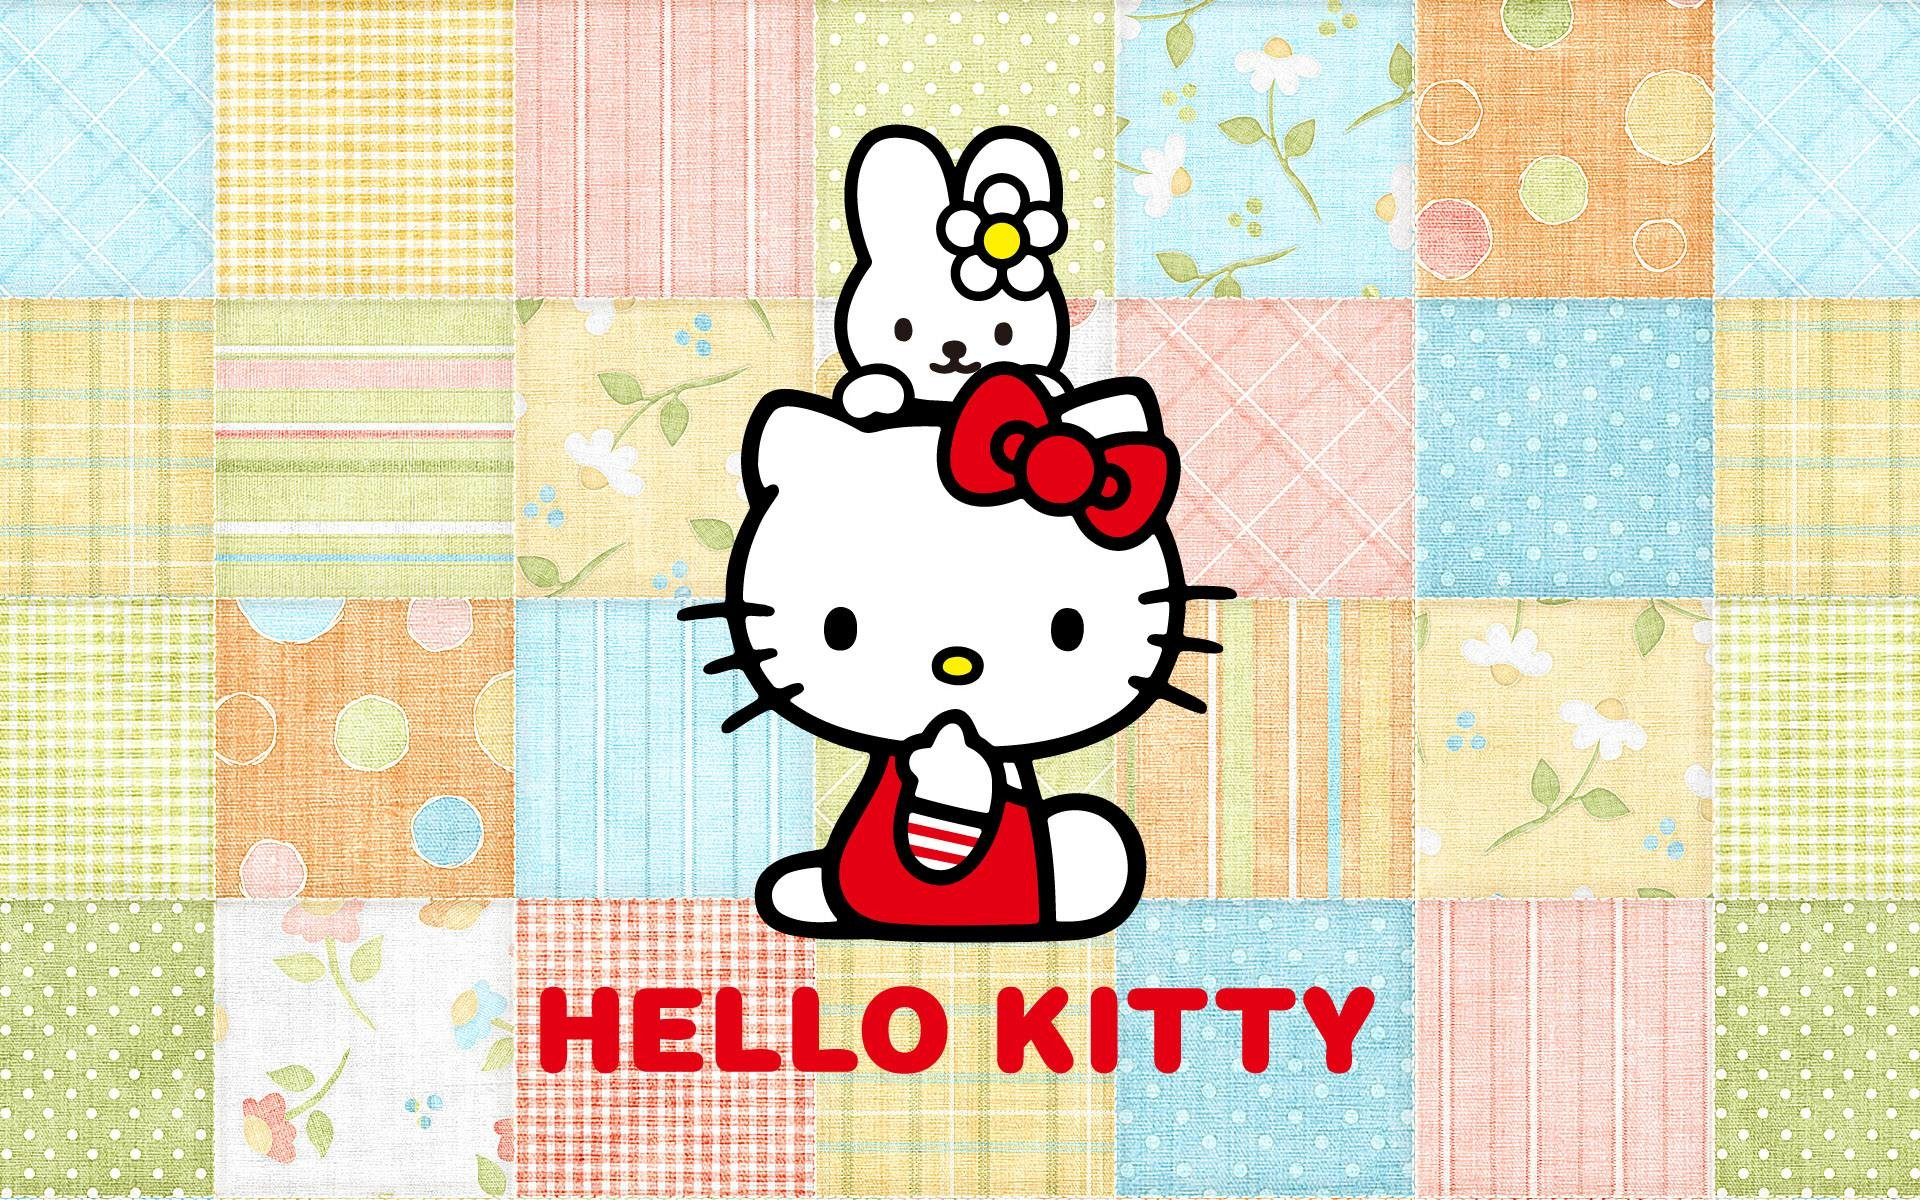 1920x1200 New Hello Kitty Wallpapers | Hello Kitty Wallpapers - Part 2